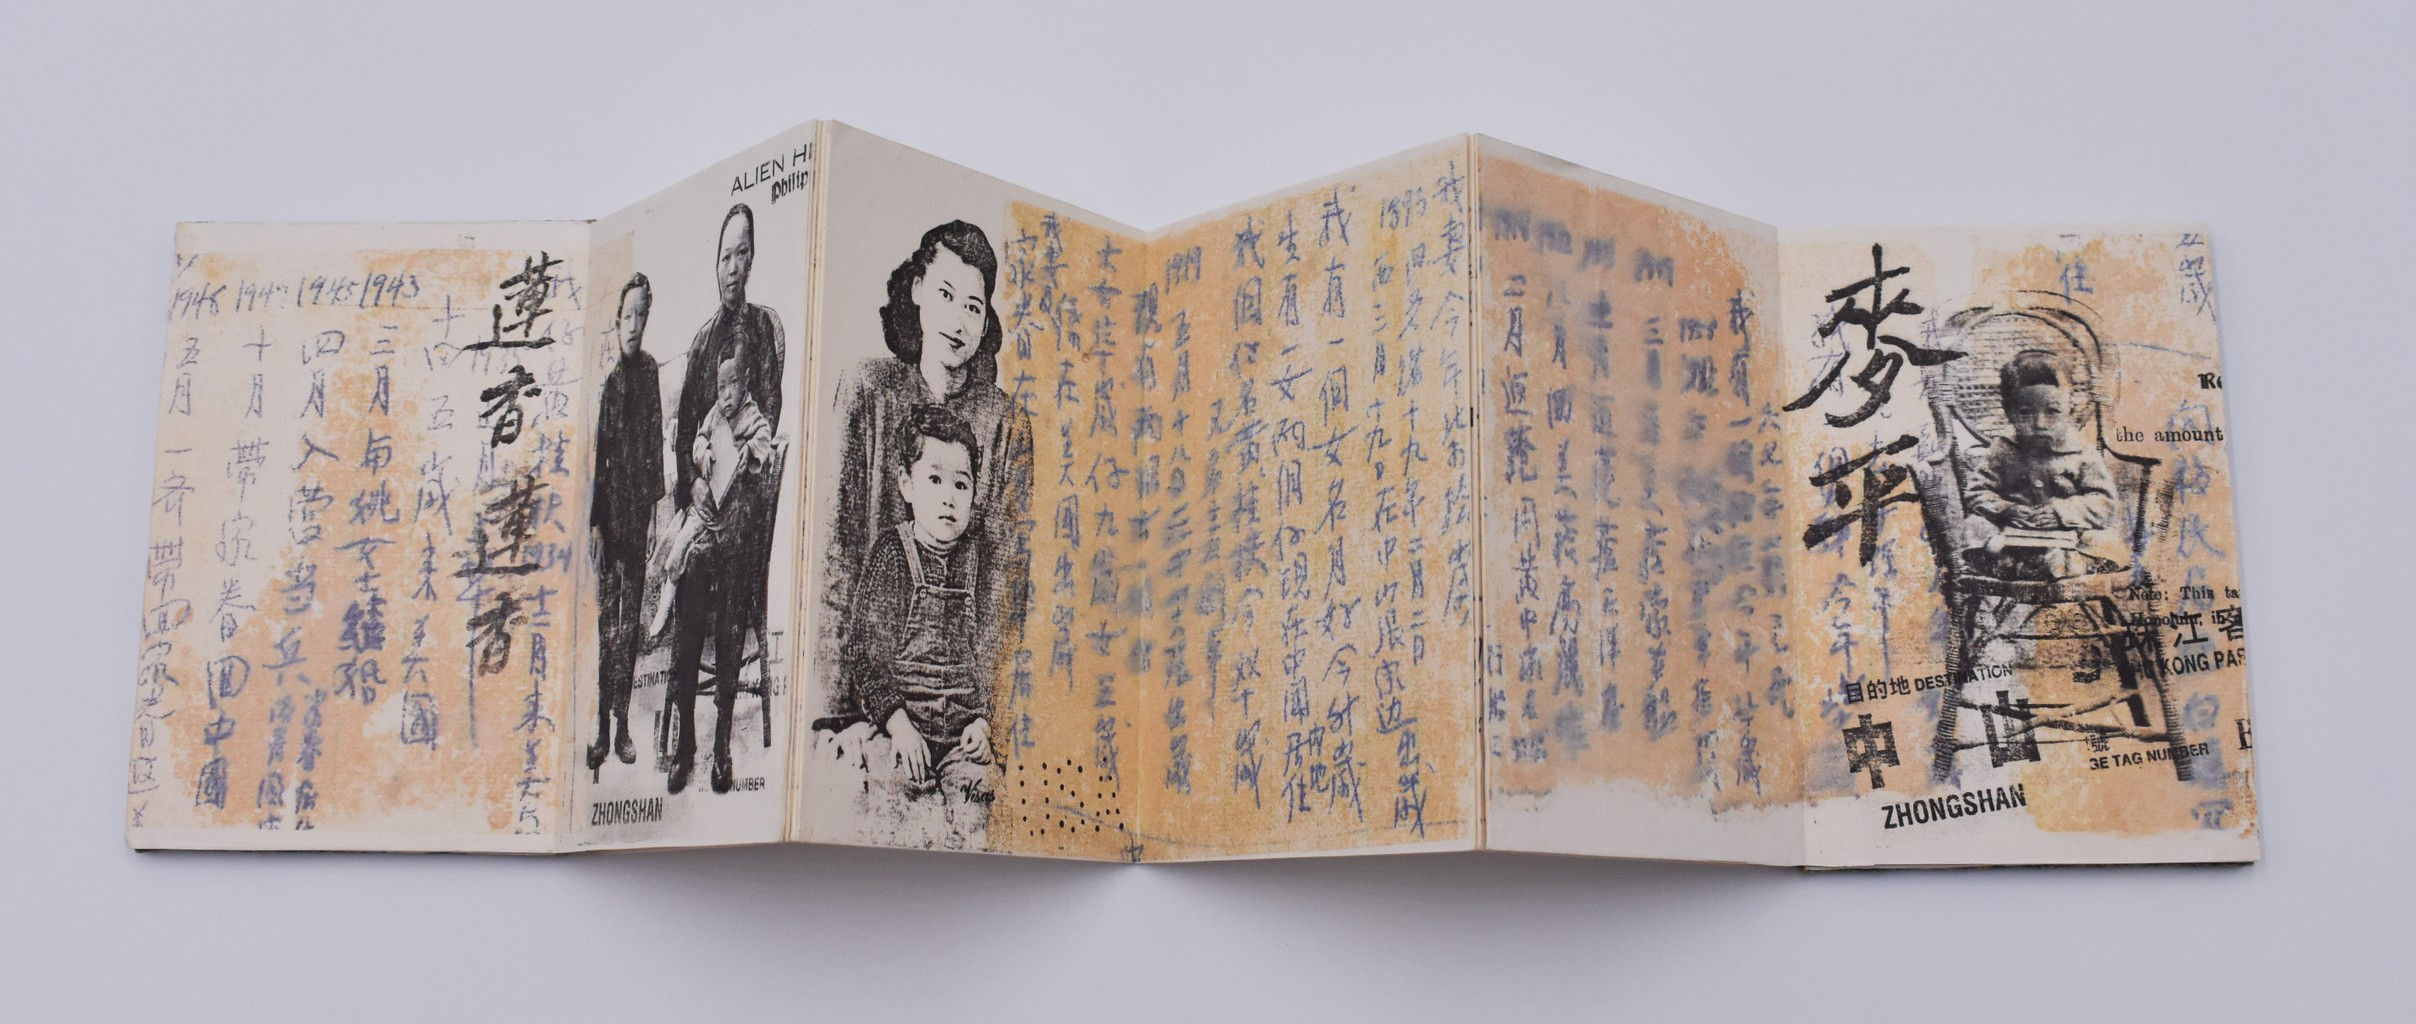 Image of open accordion book with printed image of woman and child